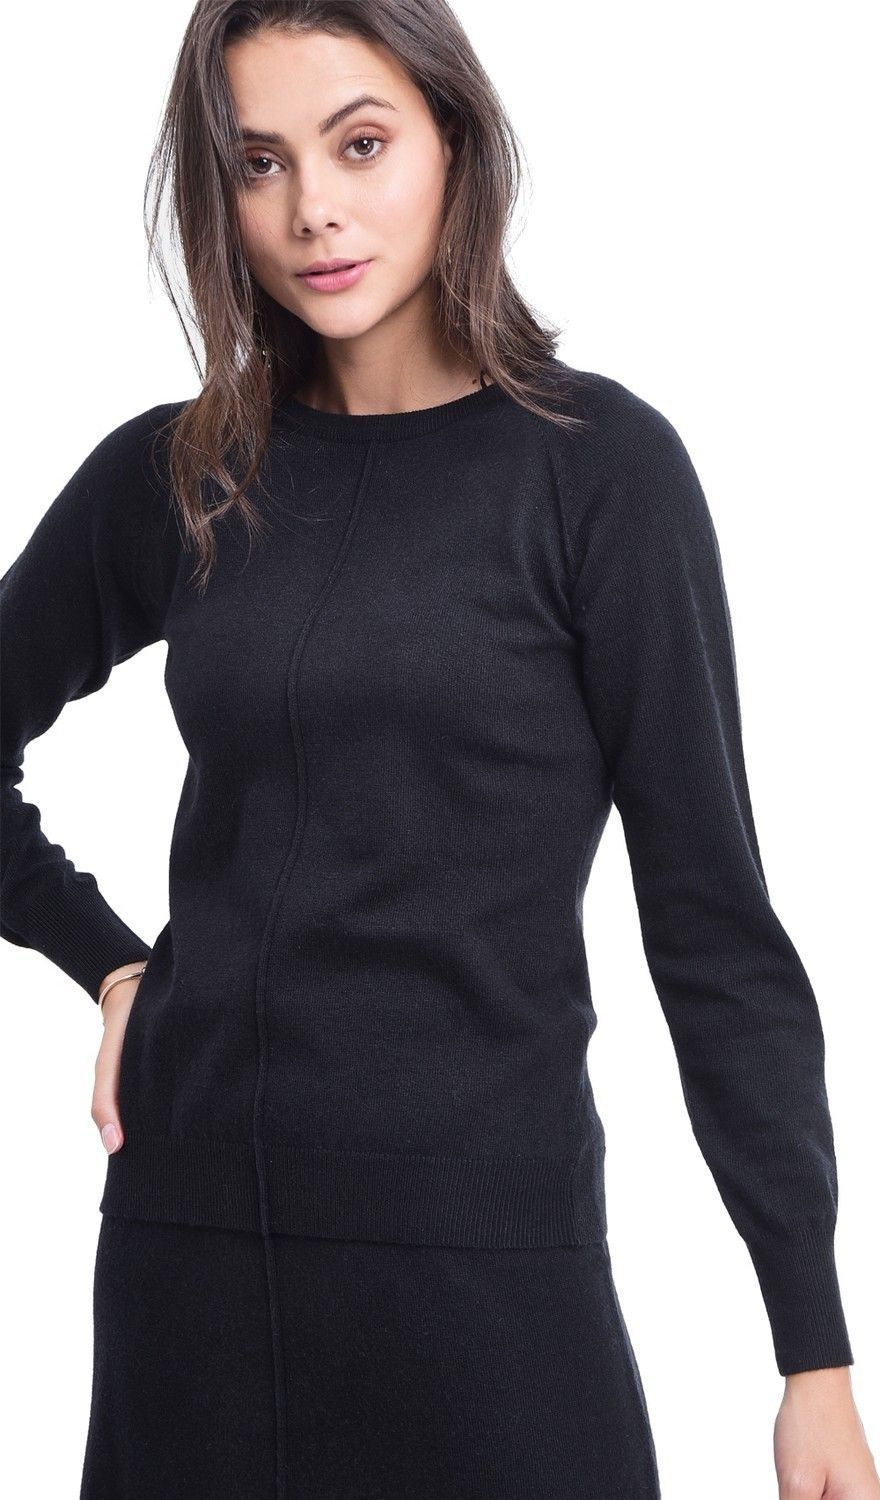 Assuili Round Neck Ribbed Sweater in Black